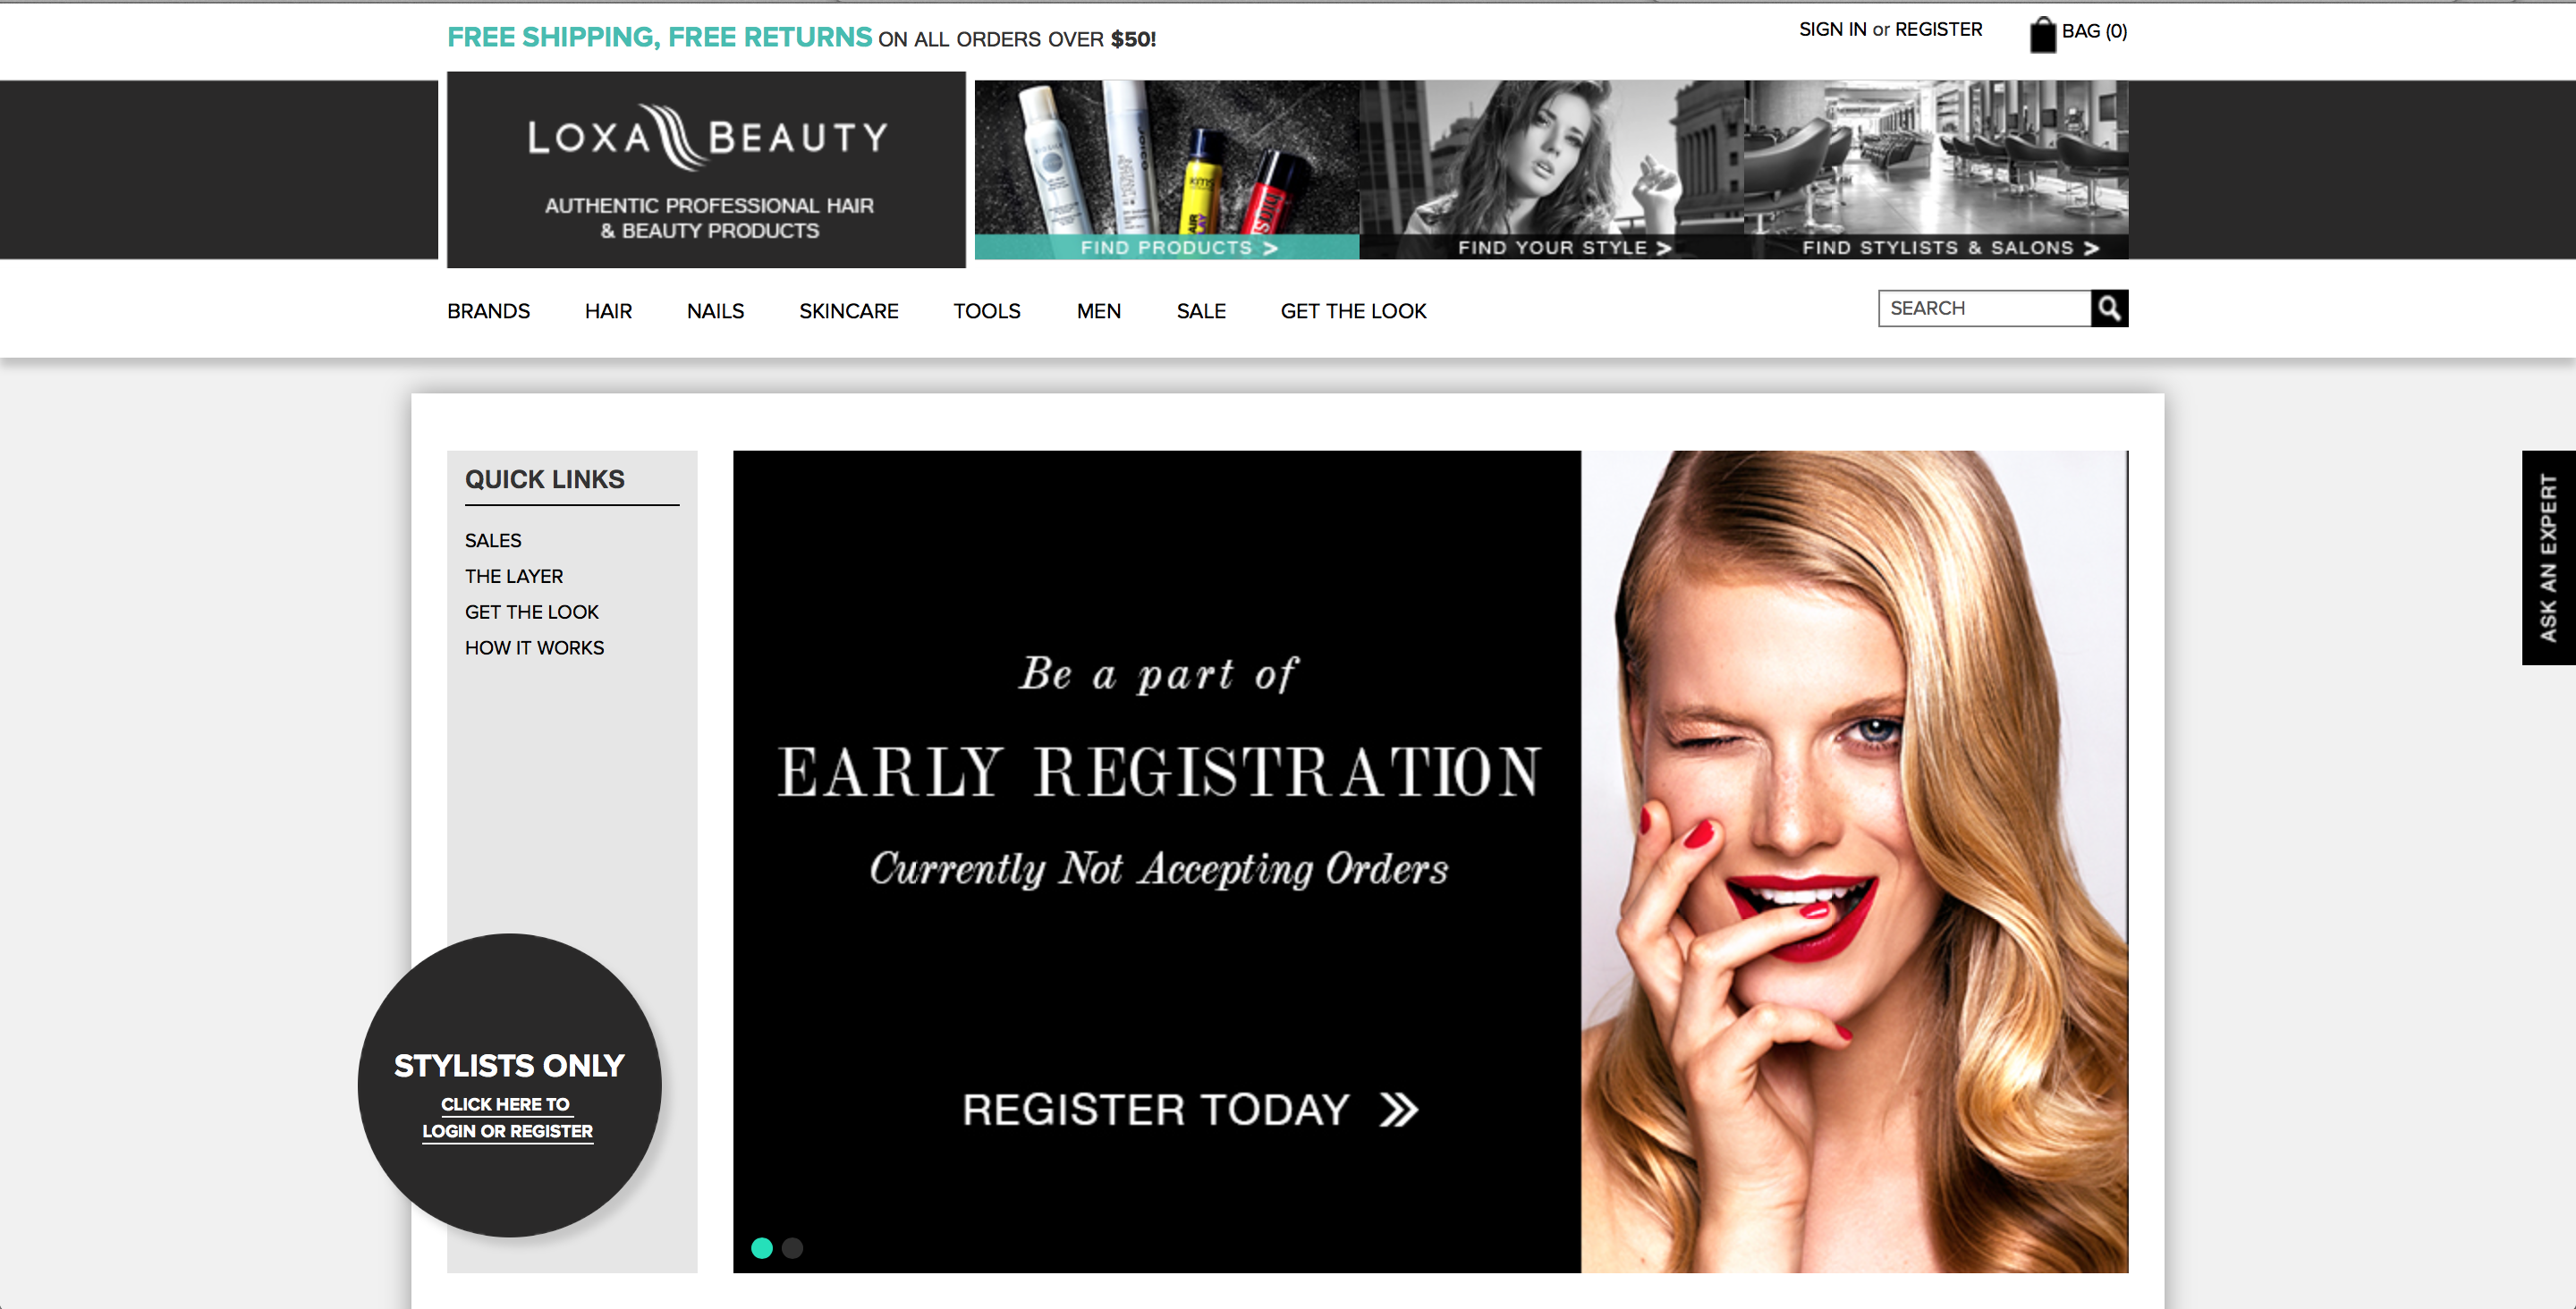 BSG Previews Loxa Beauty E-Commerce Site